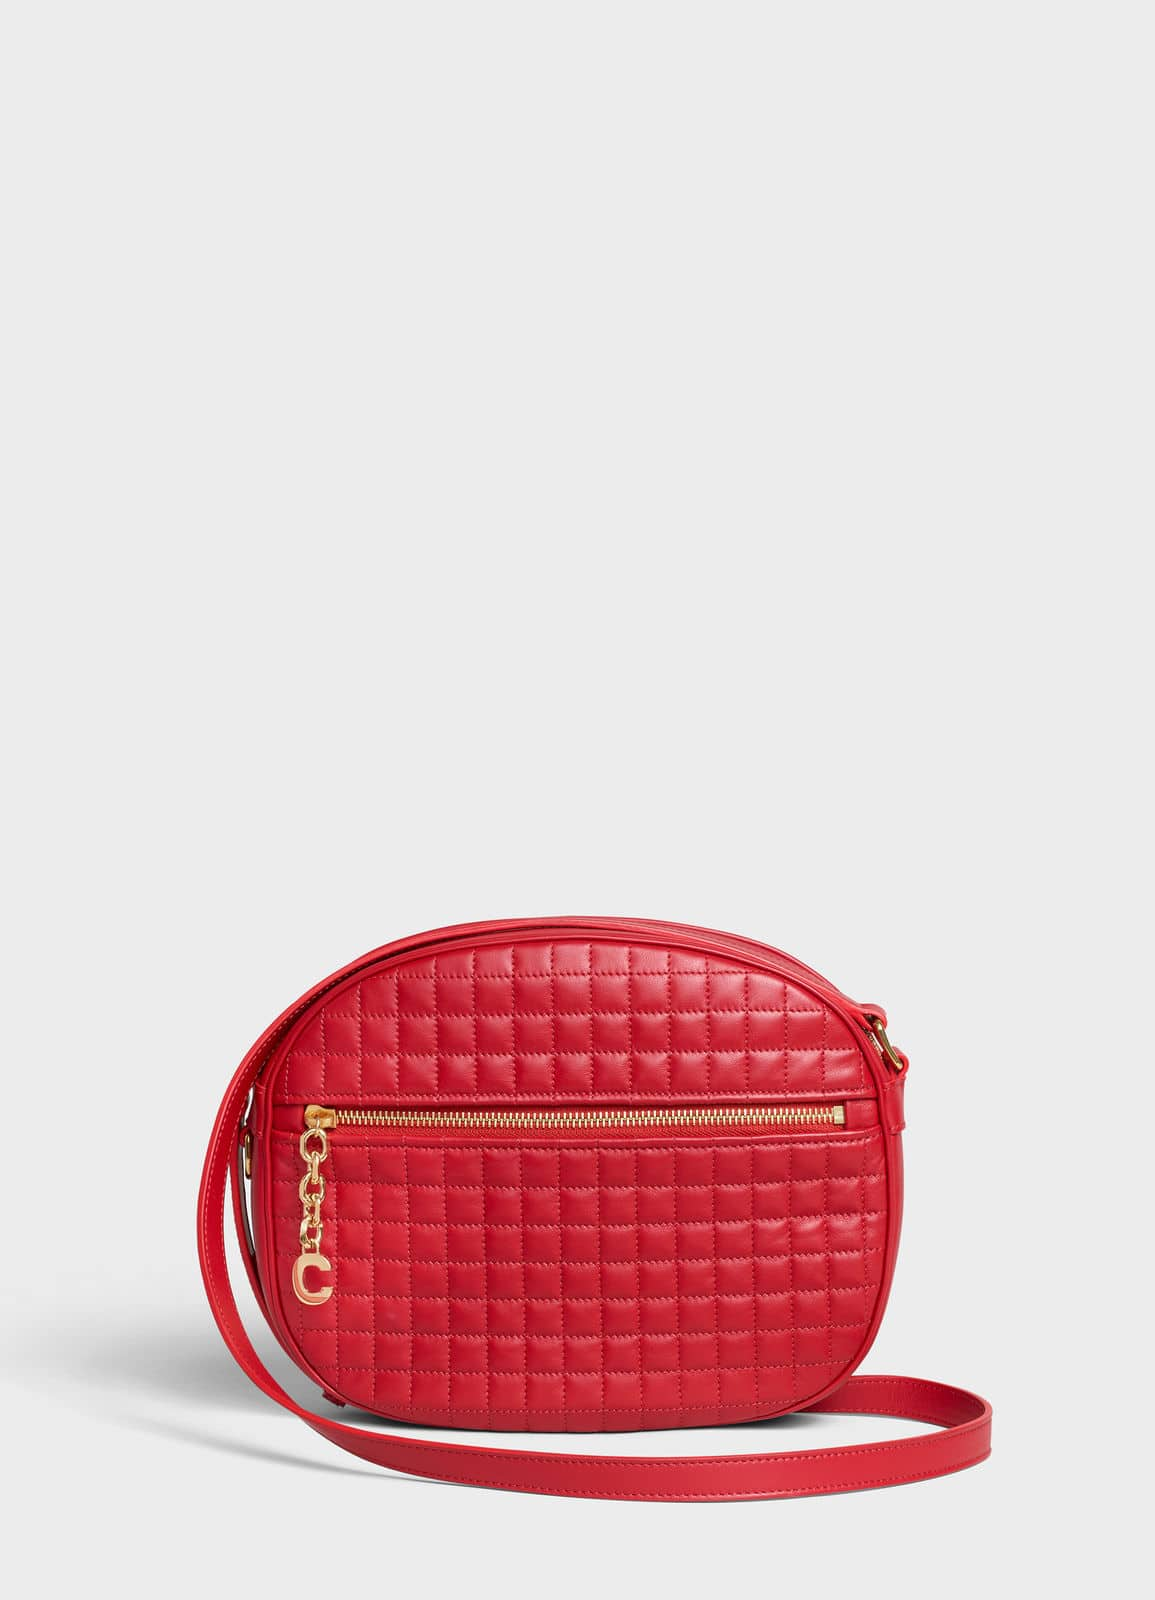 c708a0aff769 Celine Red Quilted Calfskin Medium C Charm Bag